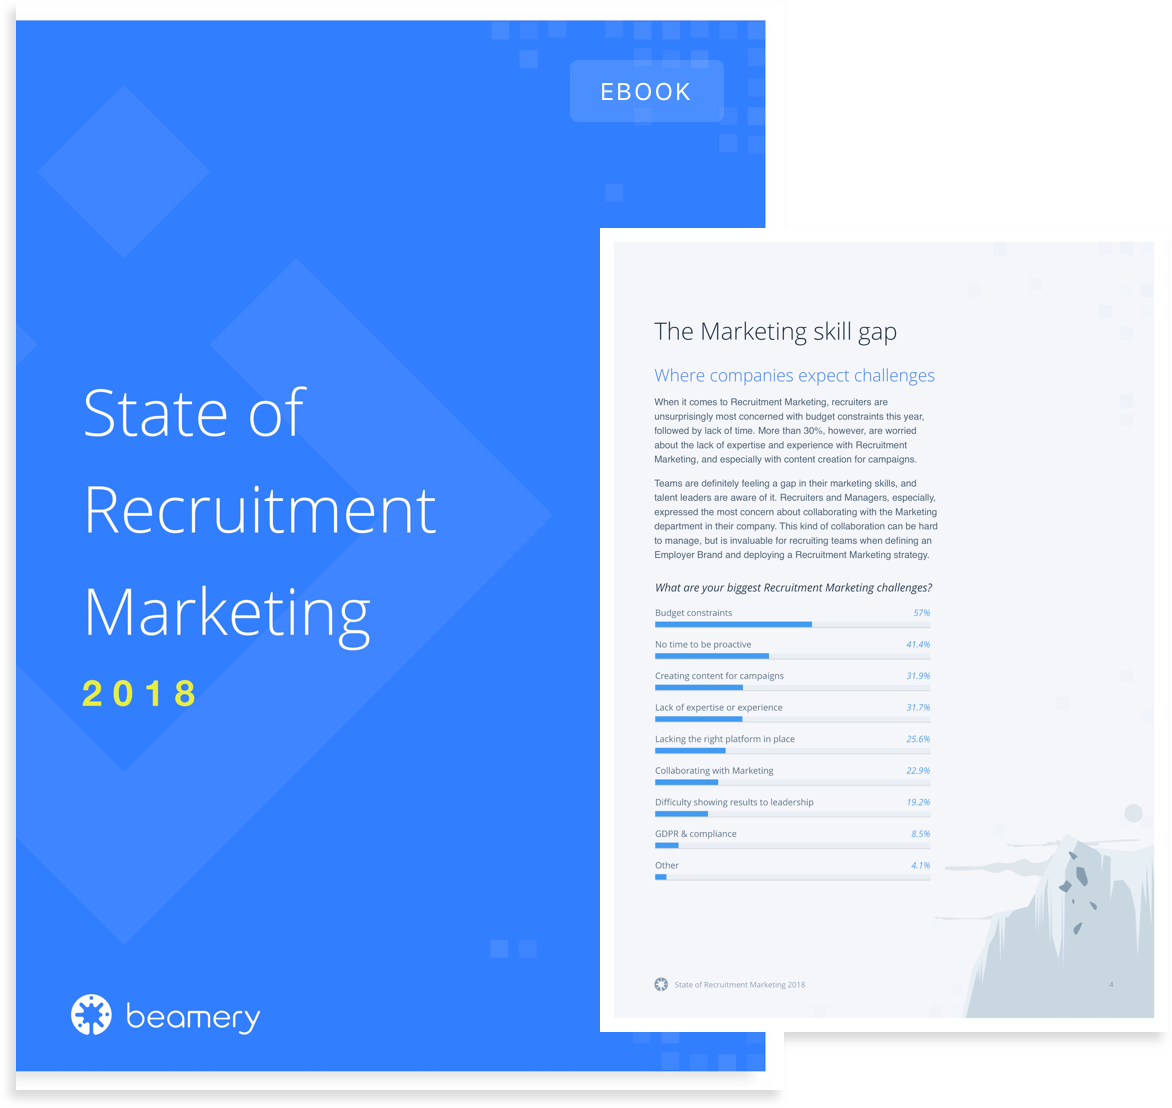 State of Recruitment Marketing 2018 image